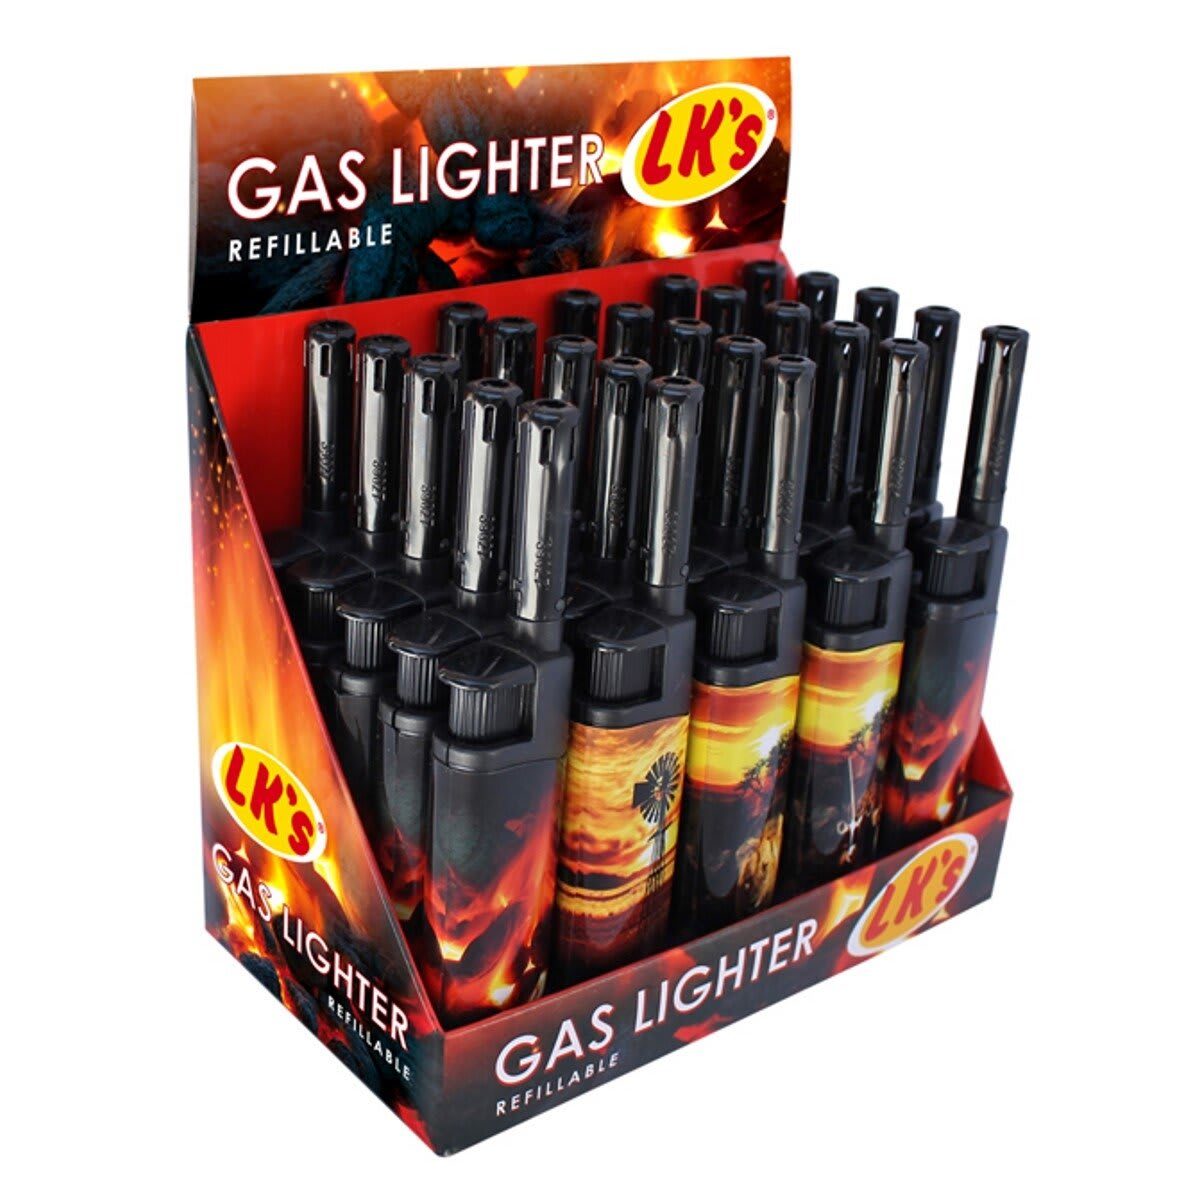 Fireside Short Gas Lighter